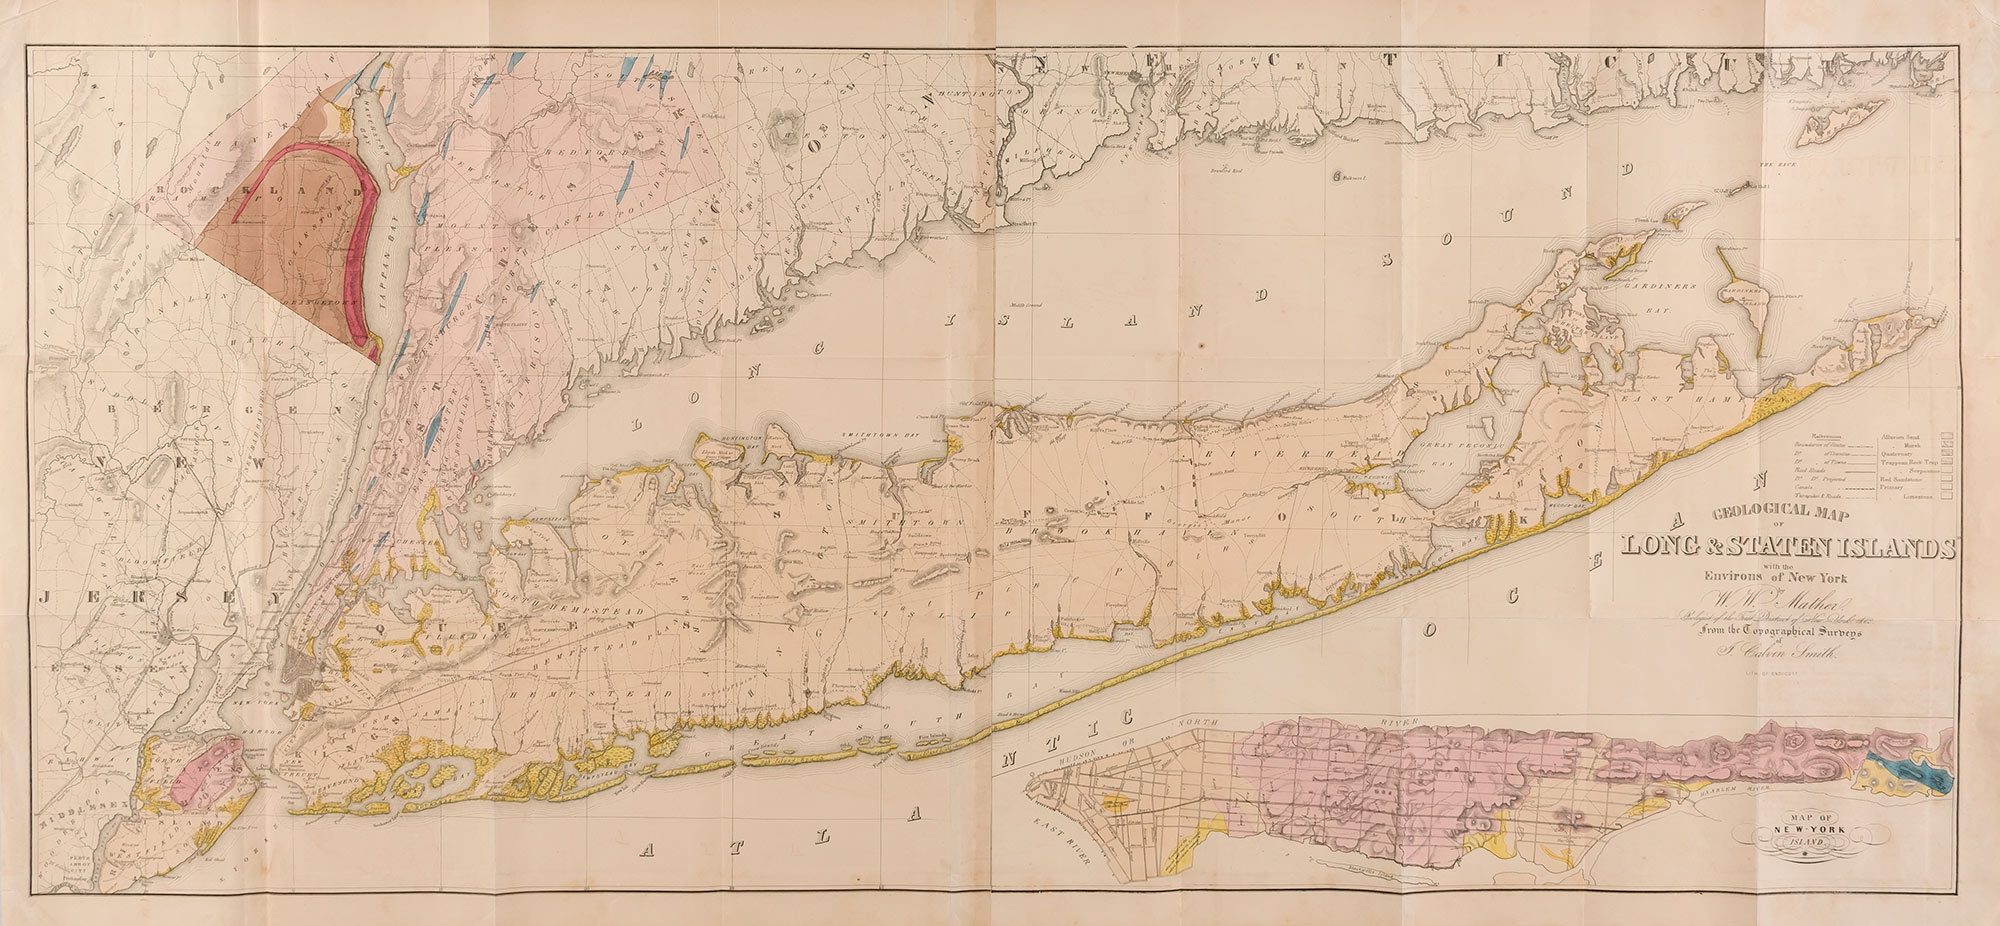 Lot image - [NEW YORK]  MATHER, W.W. Geological Map of Long & Staten Islands with the Environs of New York.